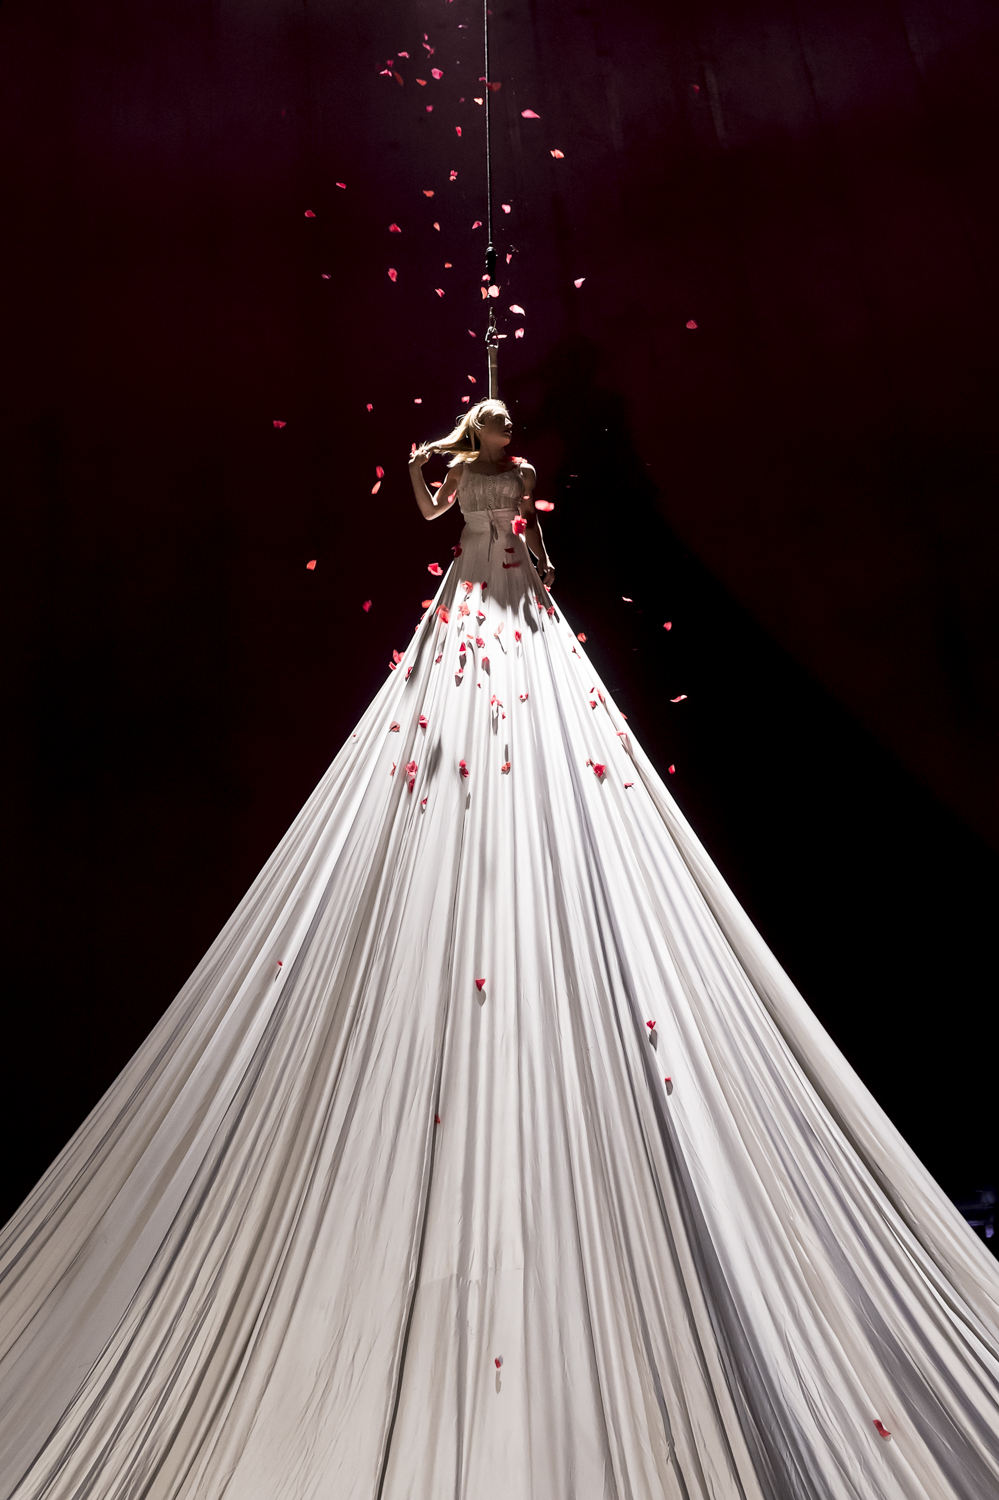 Stunning 20ft-high dress which is part of Bianco circus @Sigrid Spinnox